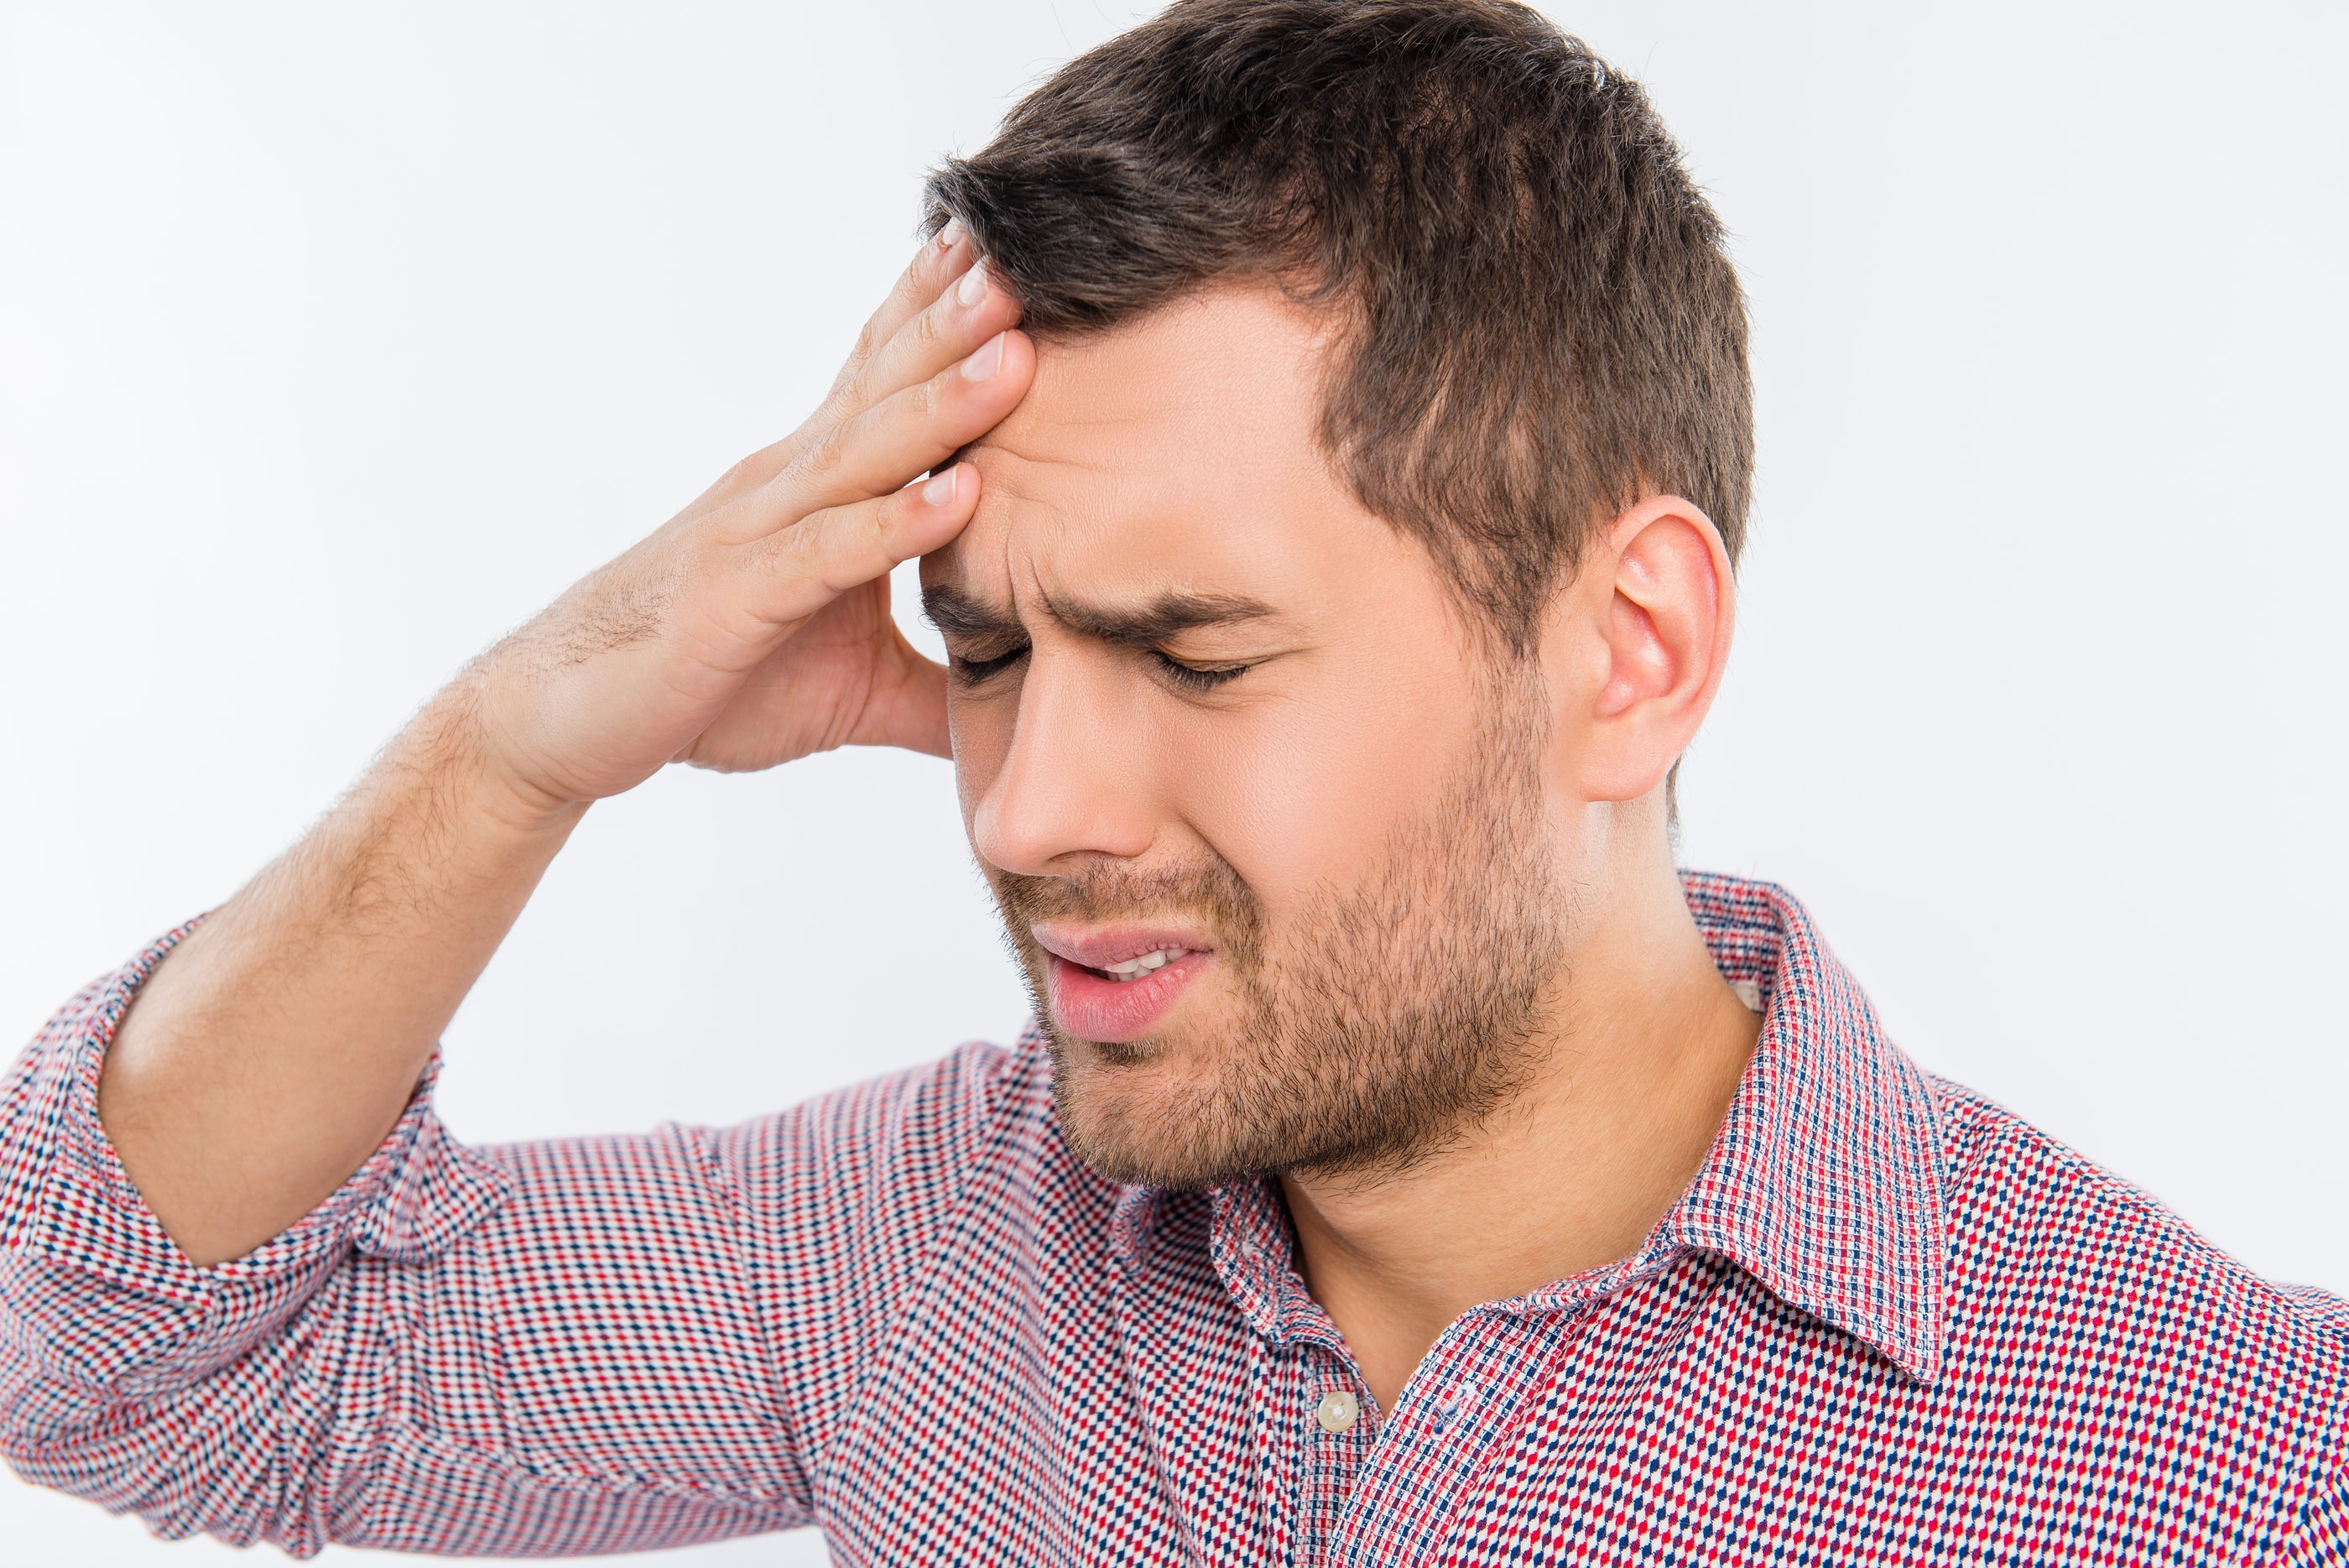 Yet another frequent side effect is headache